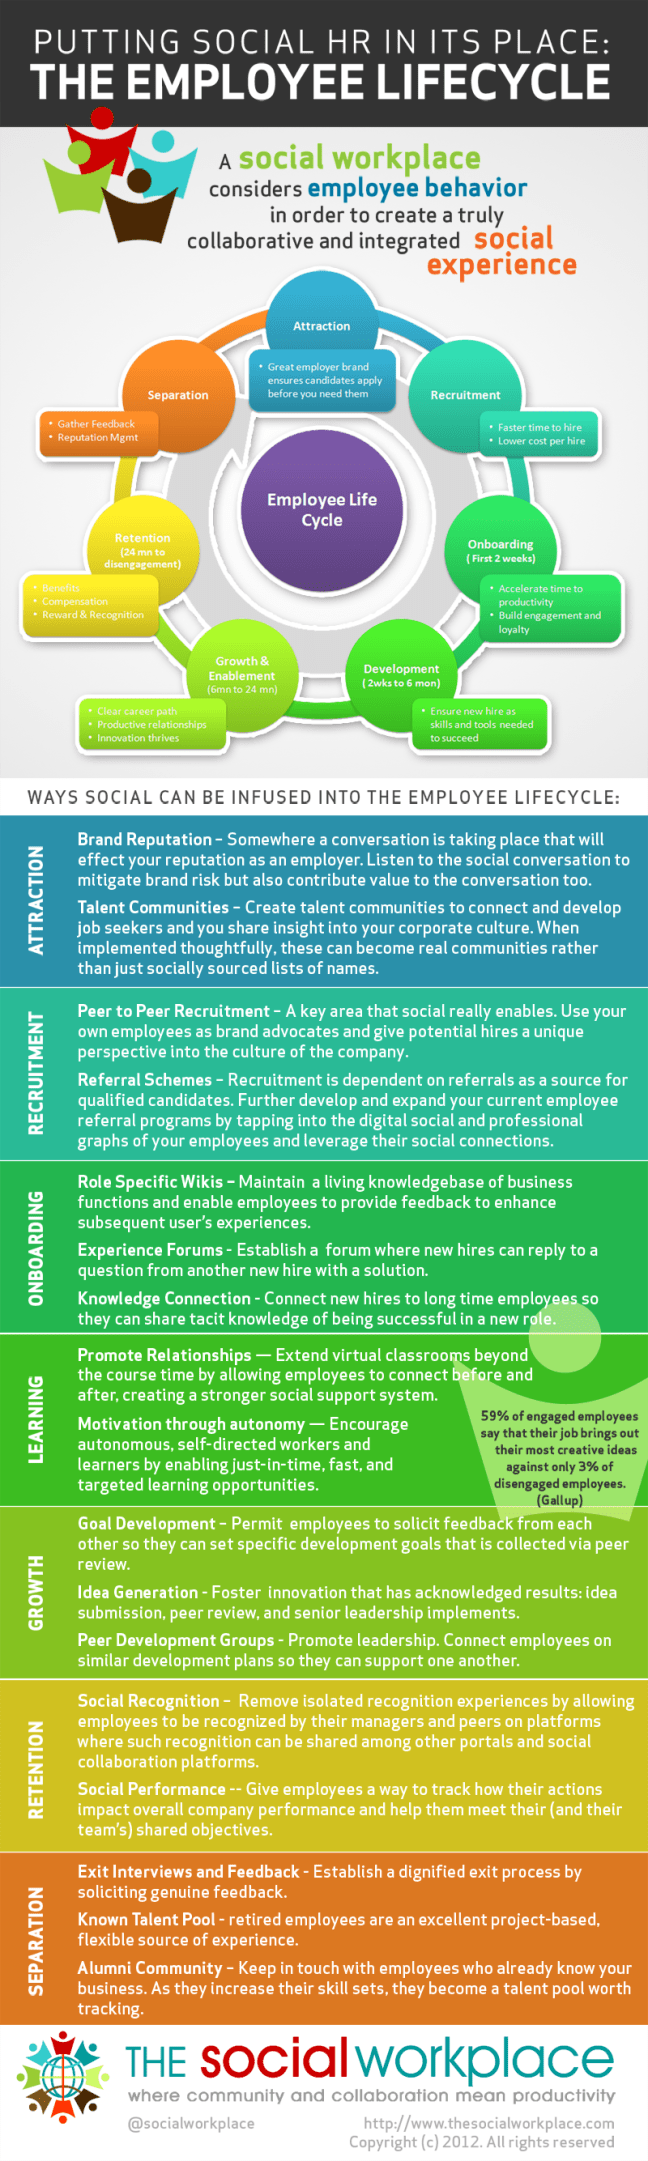 Putting Social HR in Its Place: The Employee Lifecycle